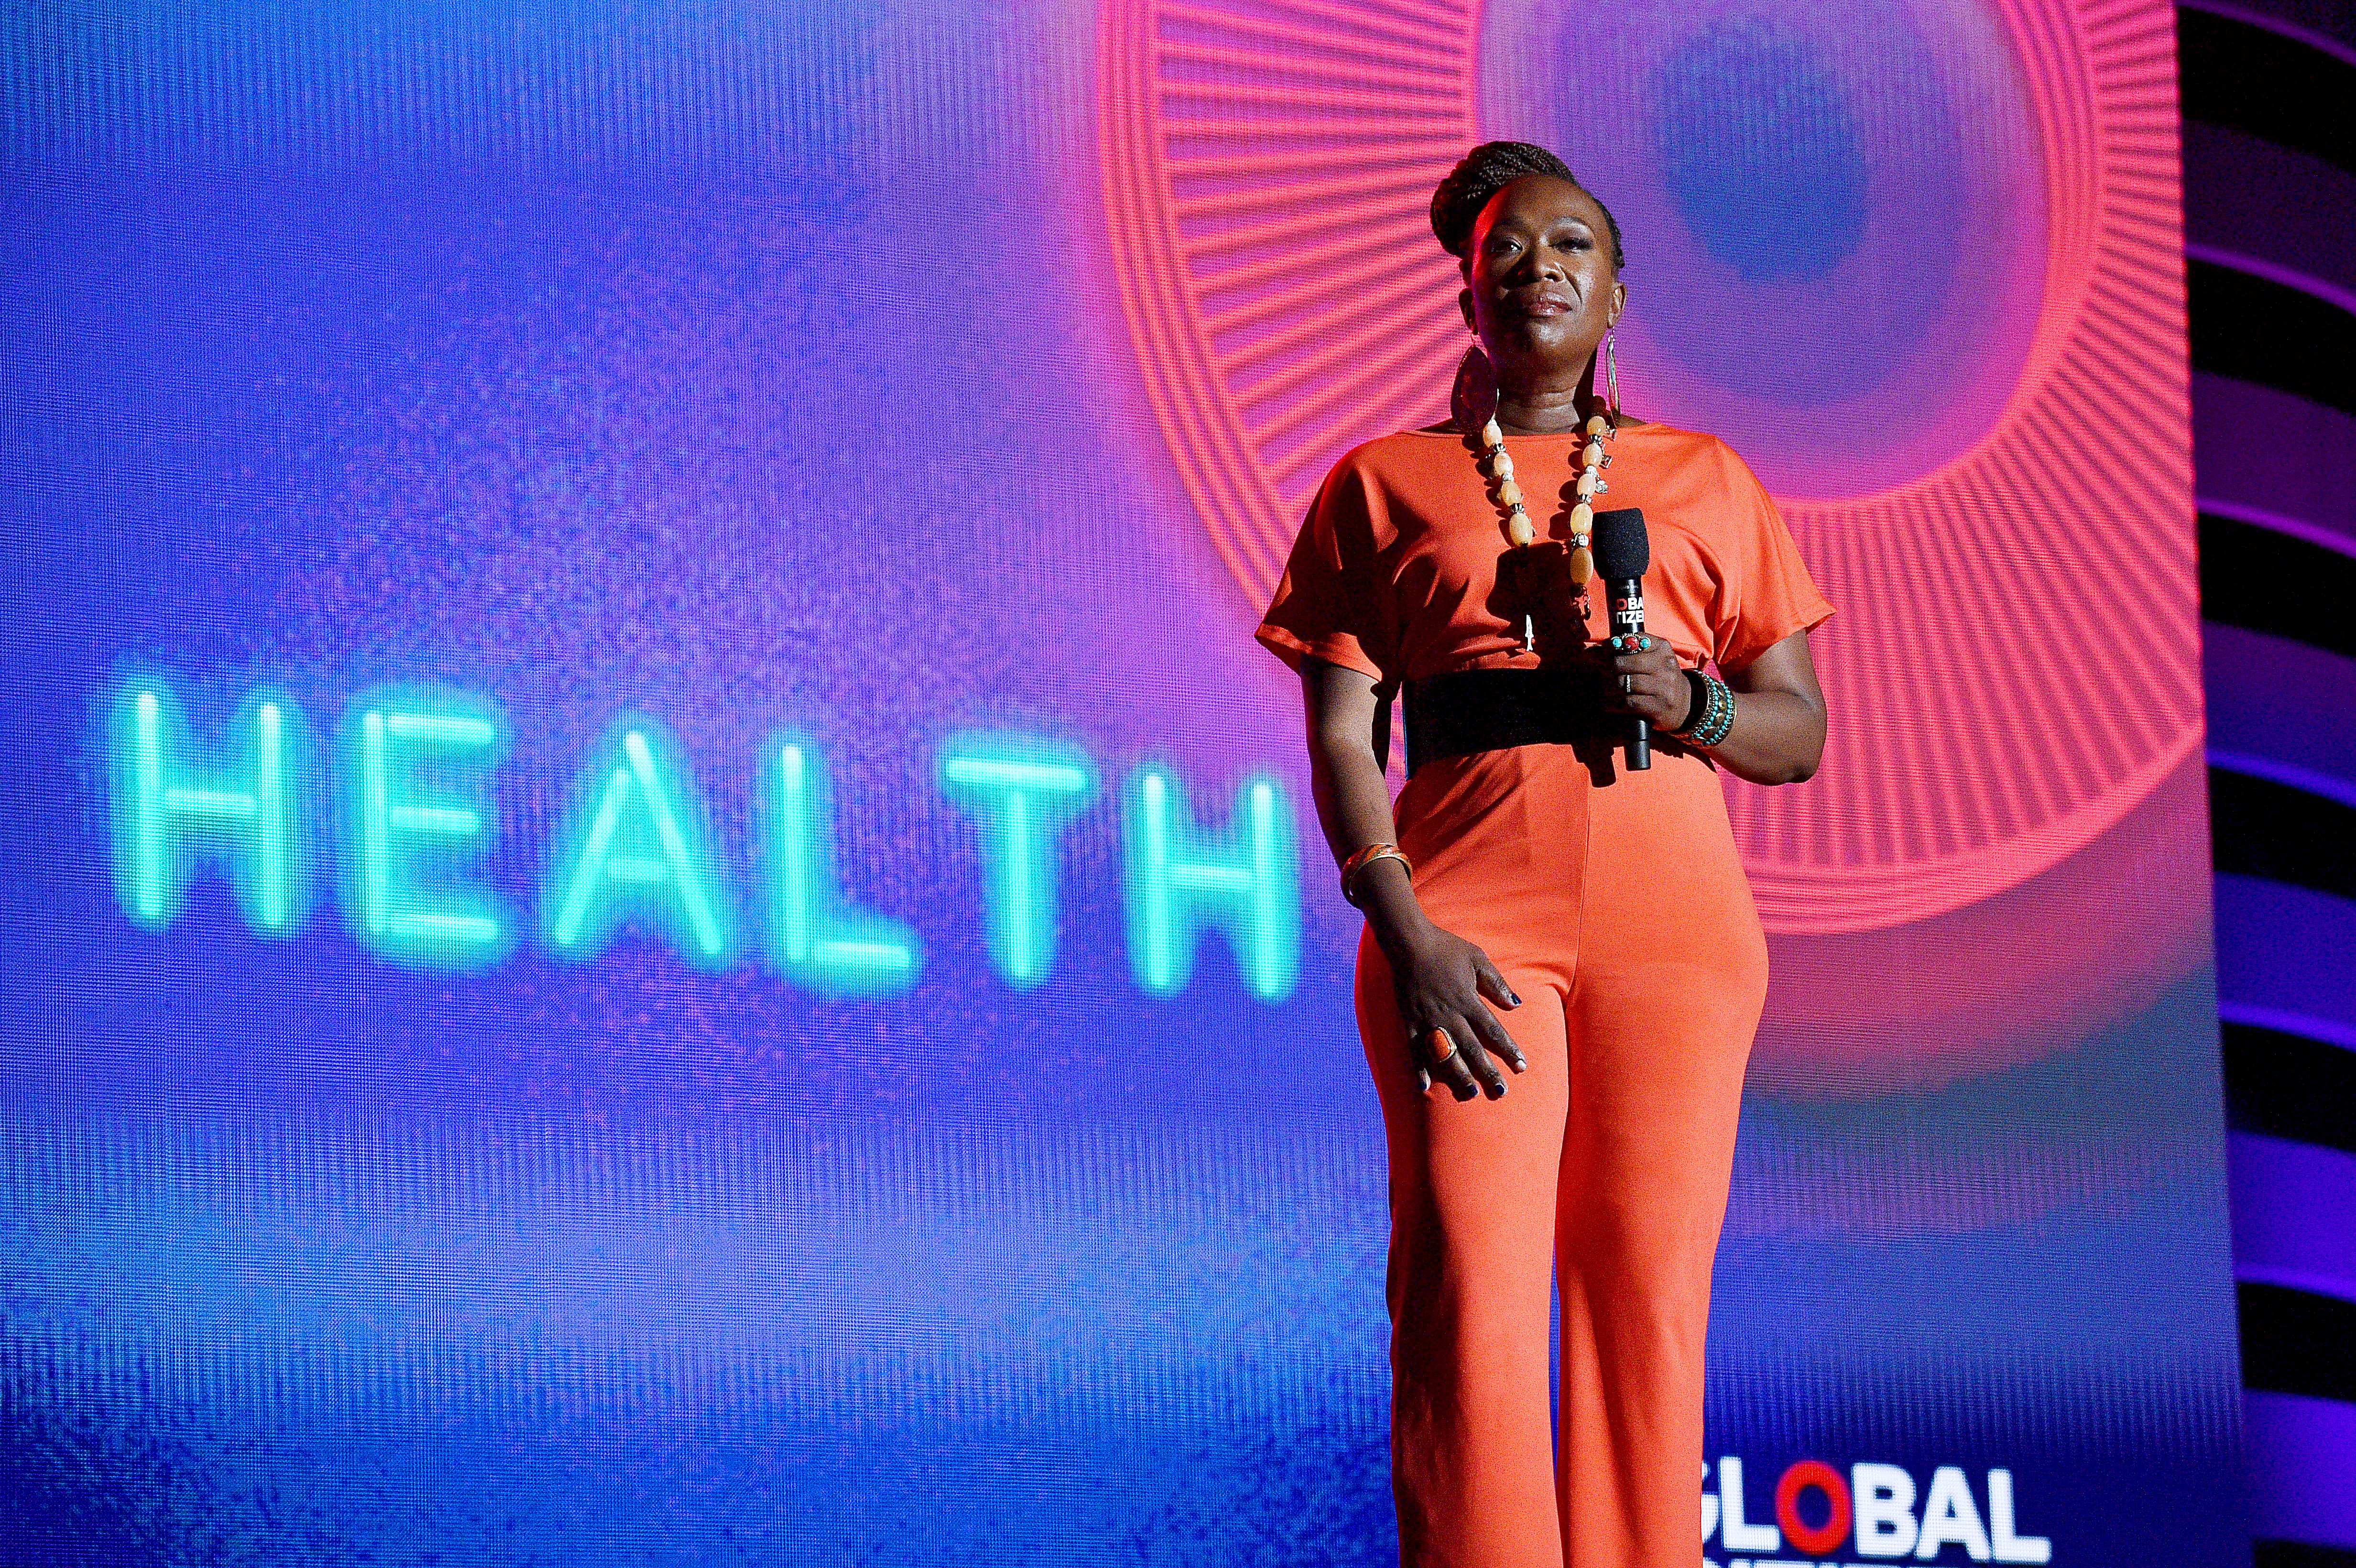 NEW YORK, NEW YORK - SEPTEMBER 28: Joy Reid speaks onstage during the 2019 Global Citizen Festival: Power The Movement in Central Park on September 28, 2019 in New York City. (Photo by Theo Wargo/Getty Images for Global Citizen)